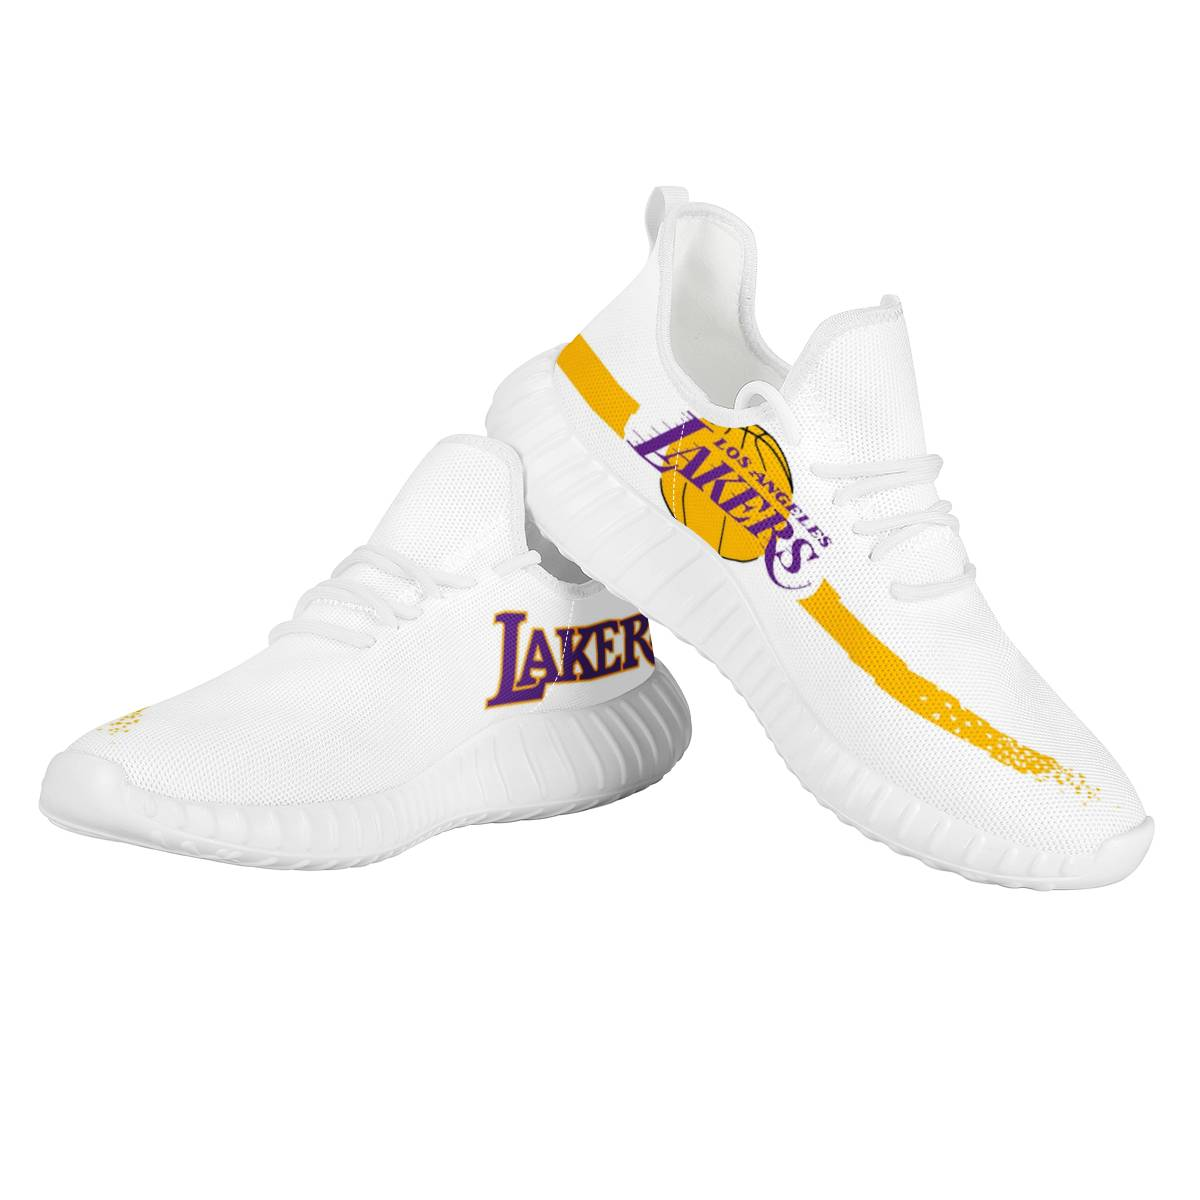 Women's Los Angeles Lakers Mesh Knit Sneakers/Shoes 002